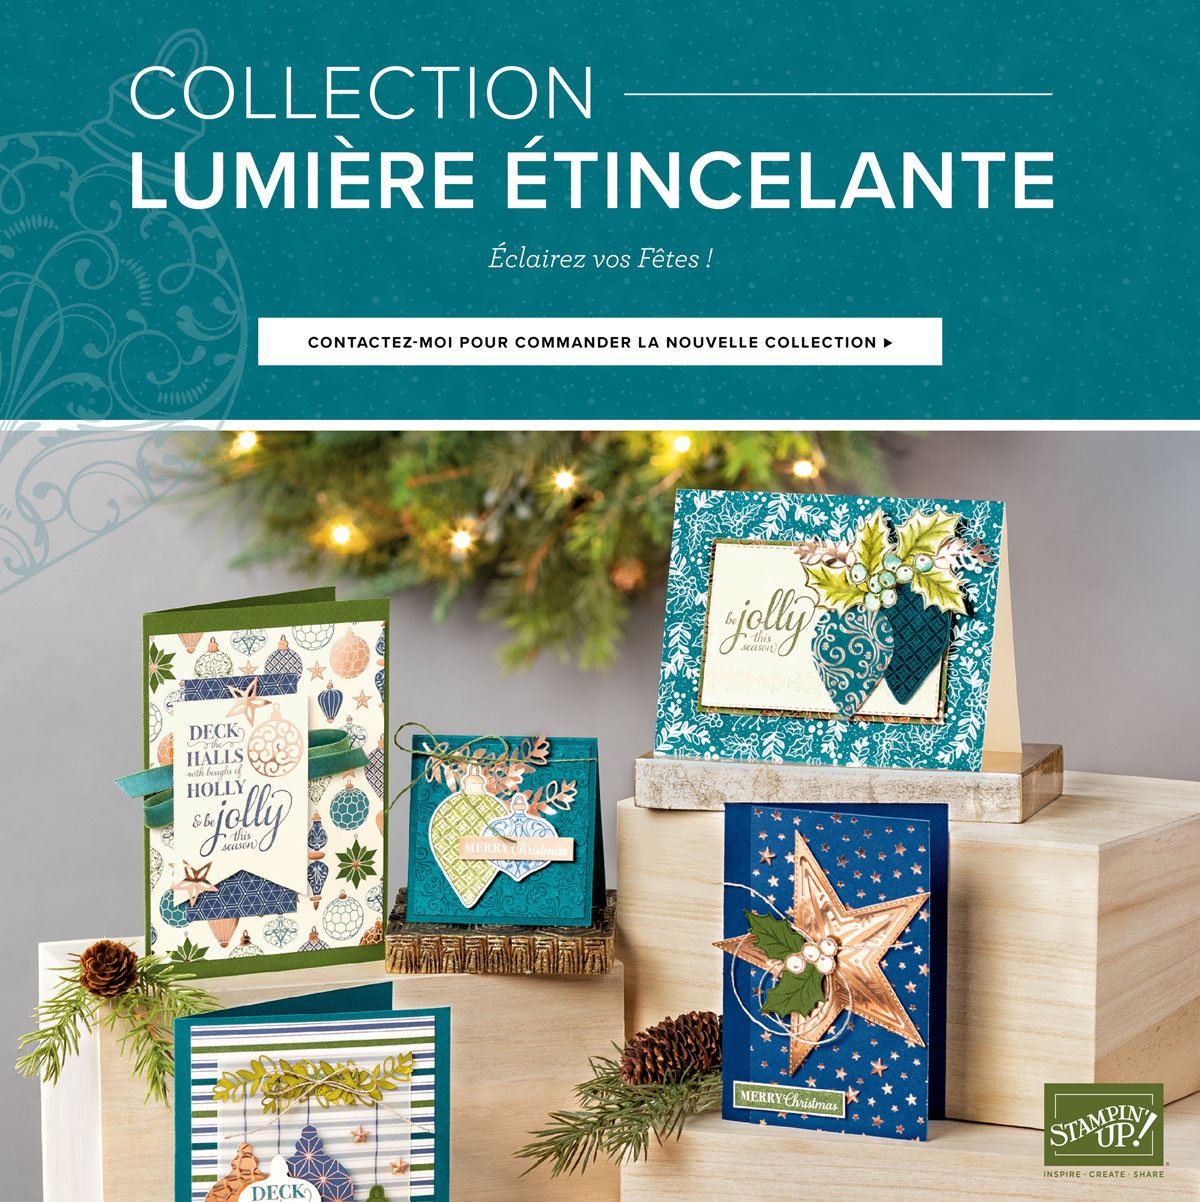 Collection Lumiere Etincelante